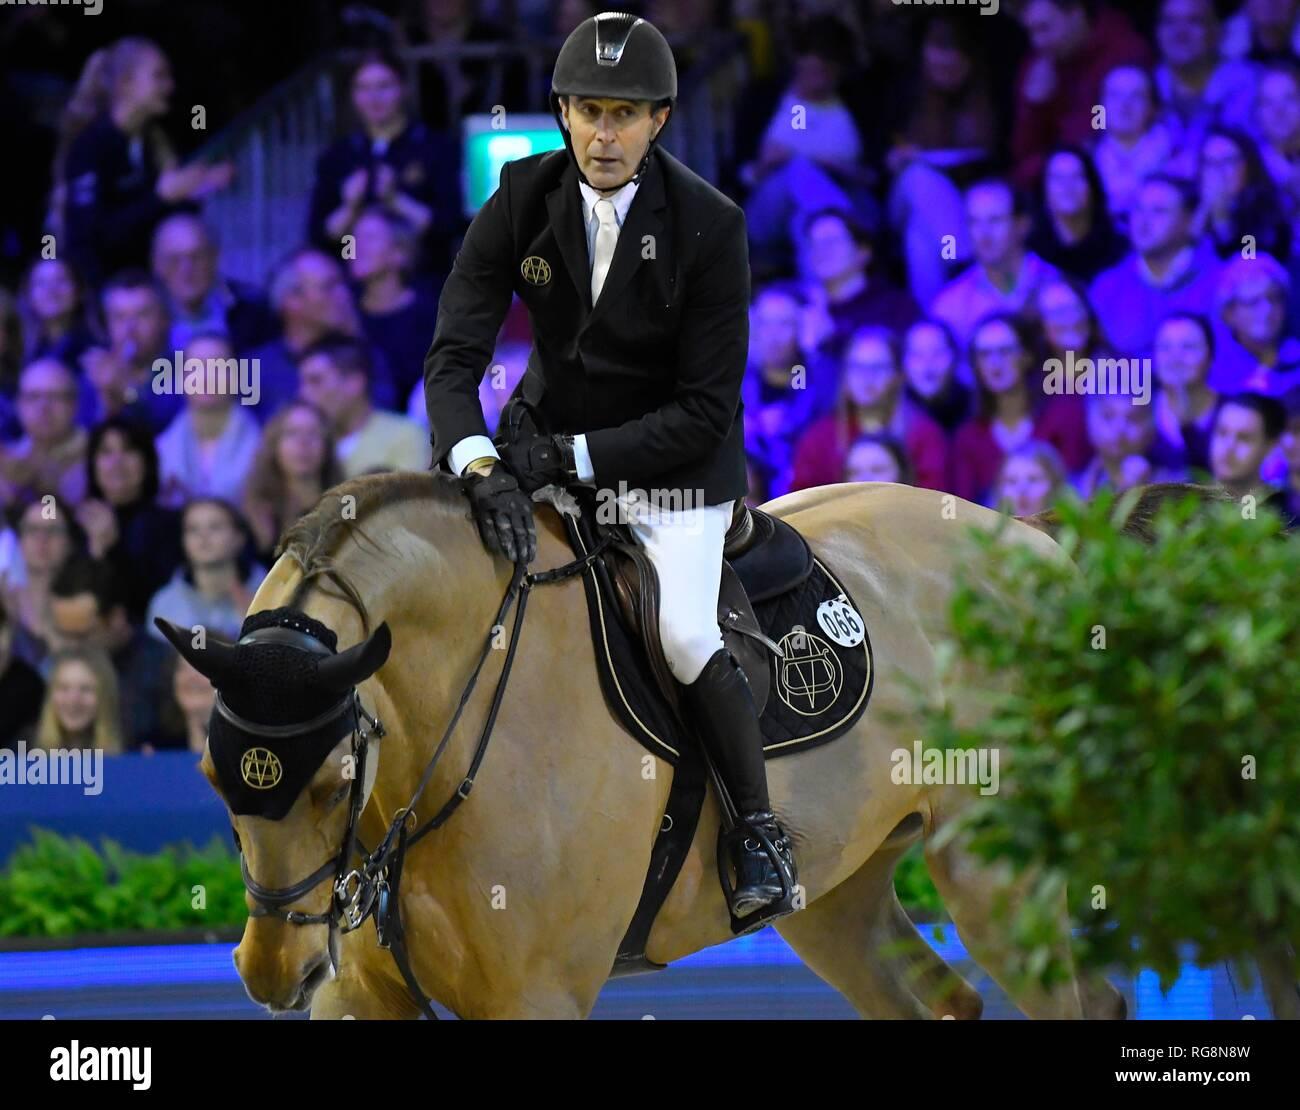 Show Jumping : Jumping Amsterdam 2019 Eric van der Vleuten (NED) with Wunschkind on January 27, 2019 in Amsterdam, the Netherlands. Credit: Margarita Bouma/SCS/AFLO/Alamy Live News Stock Photo